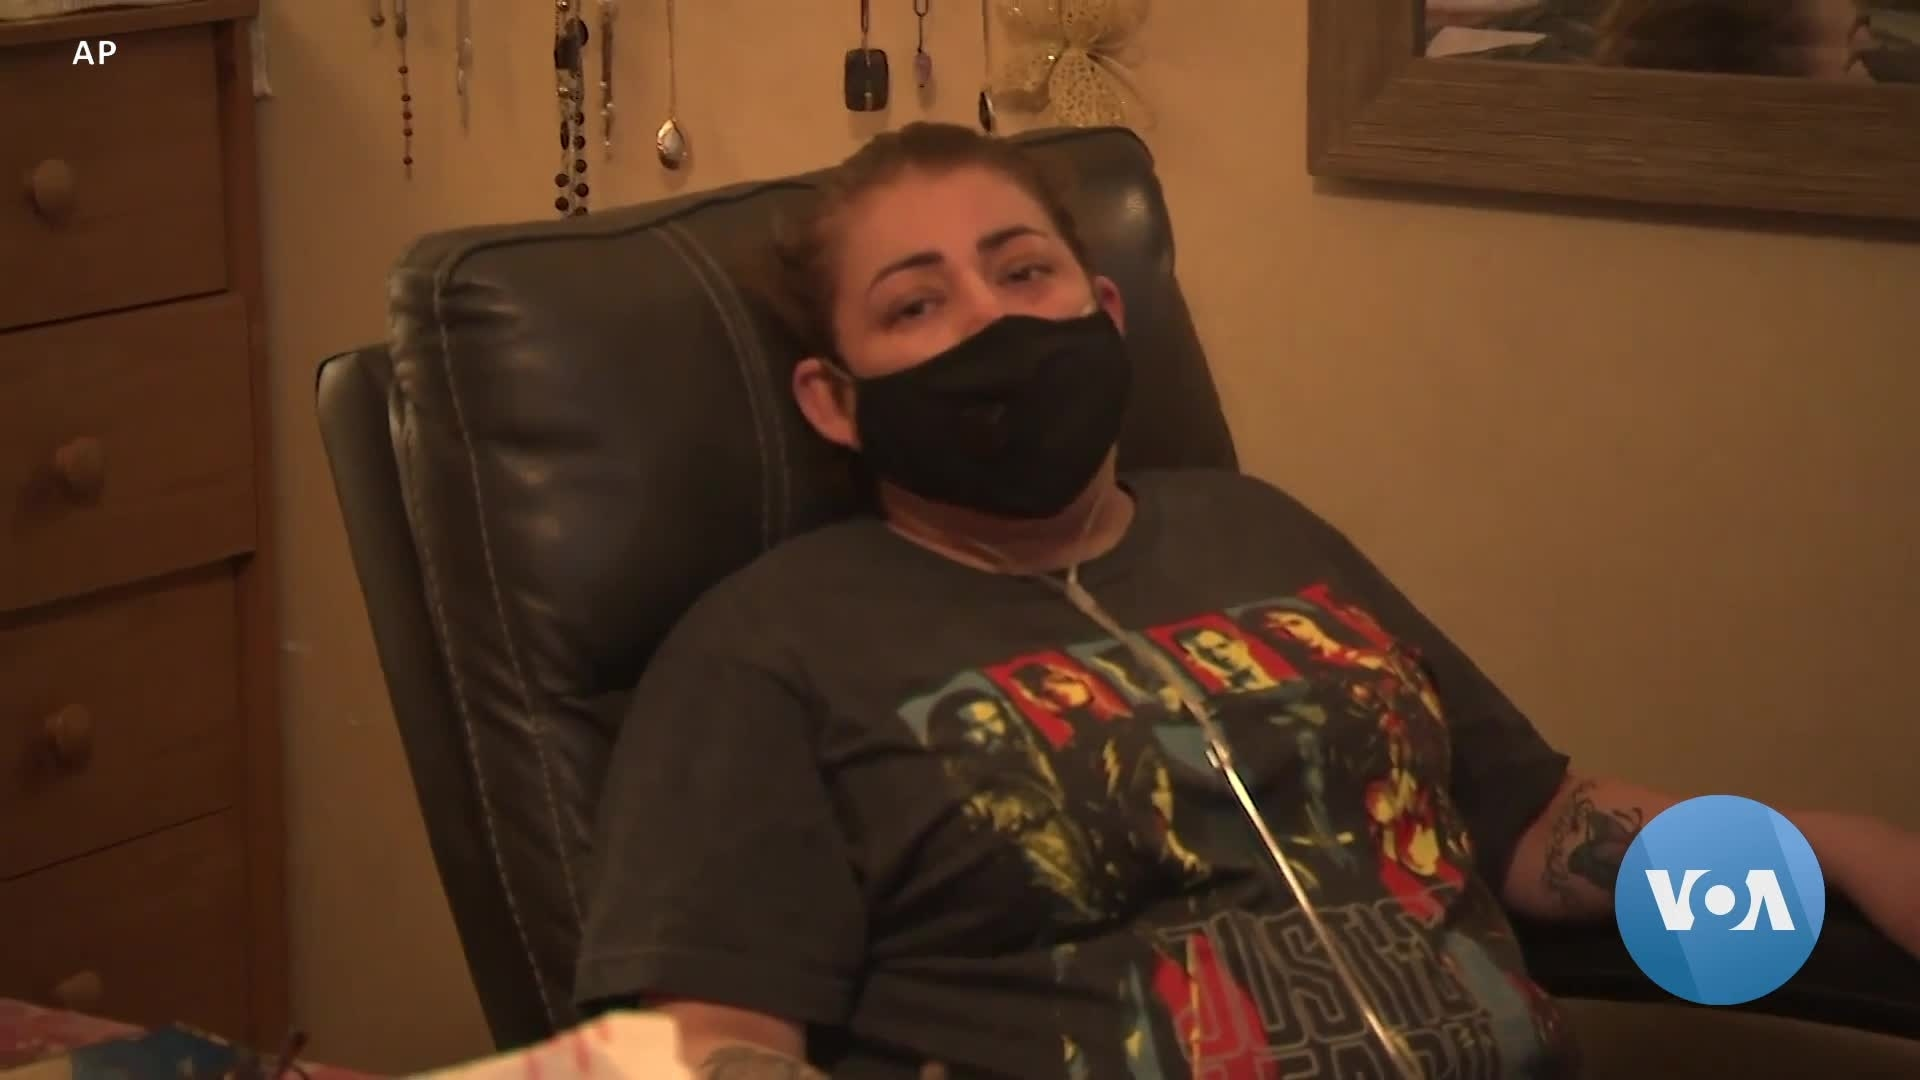 She Lost Her Father to COVID-19, Then She and Her Family Got the Virus